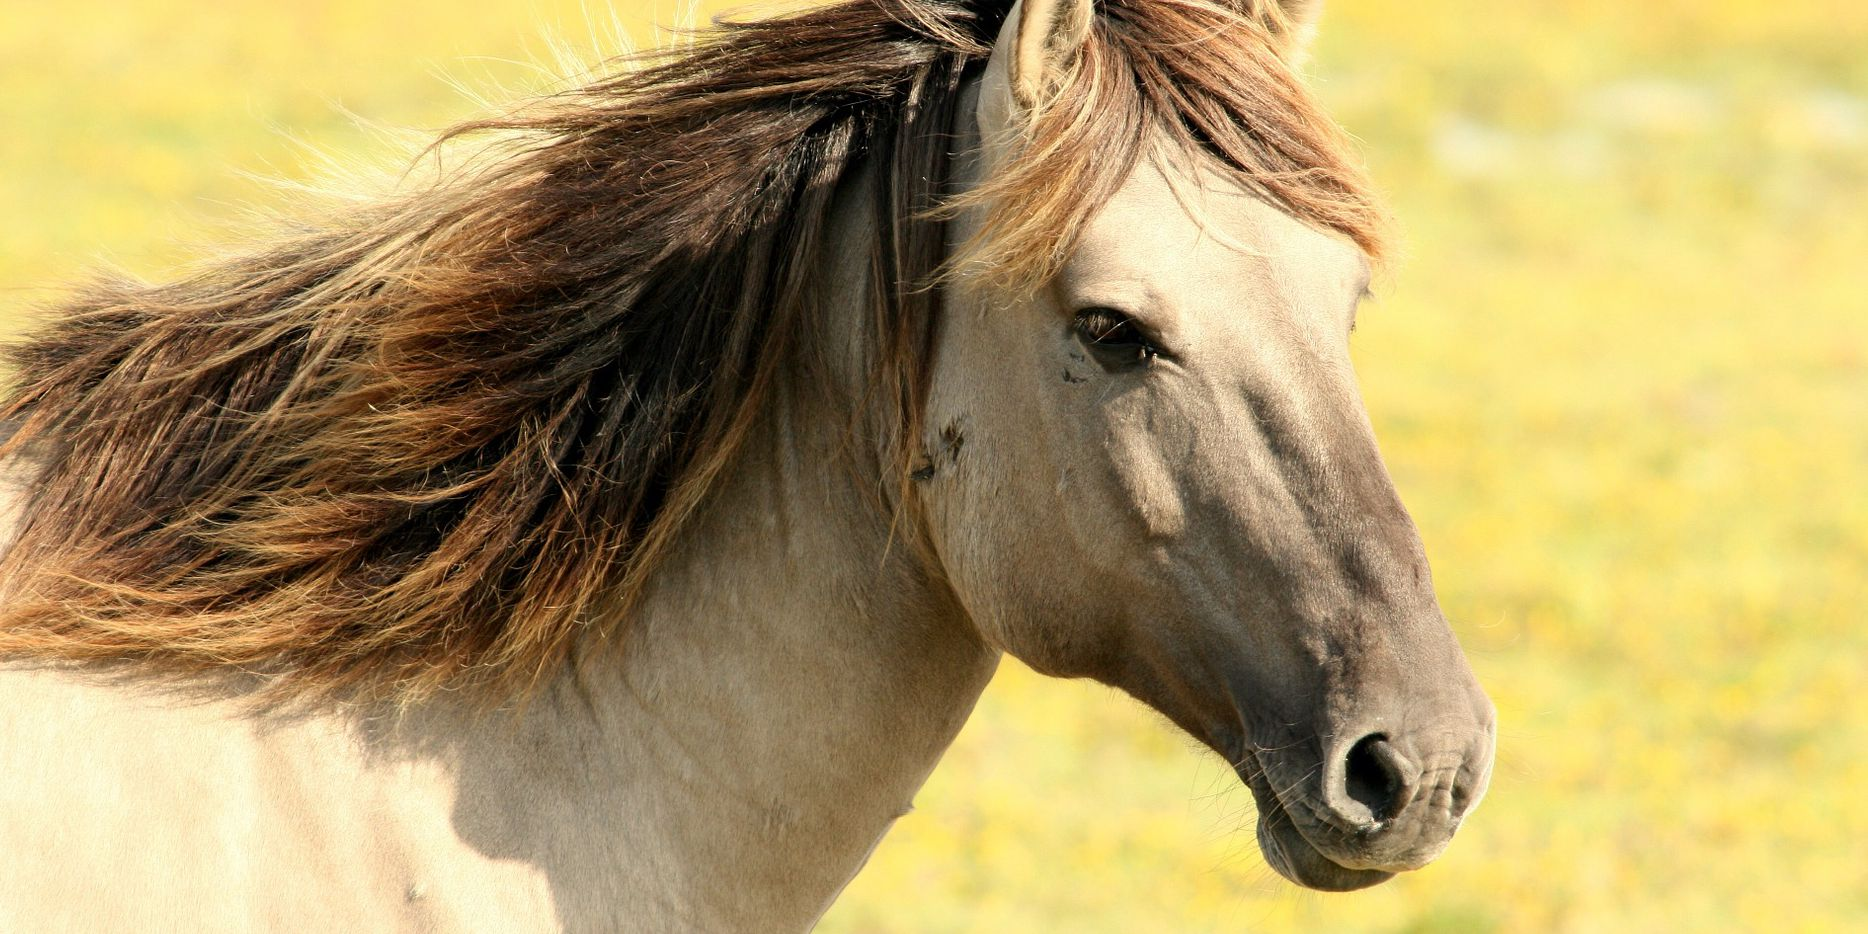 Spring means vaccinating horses against deadly diseases